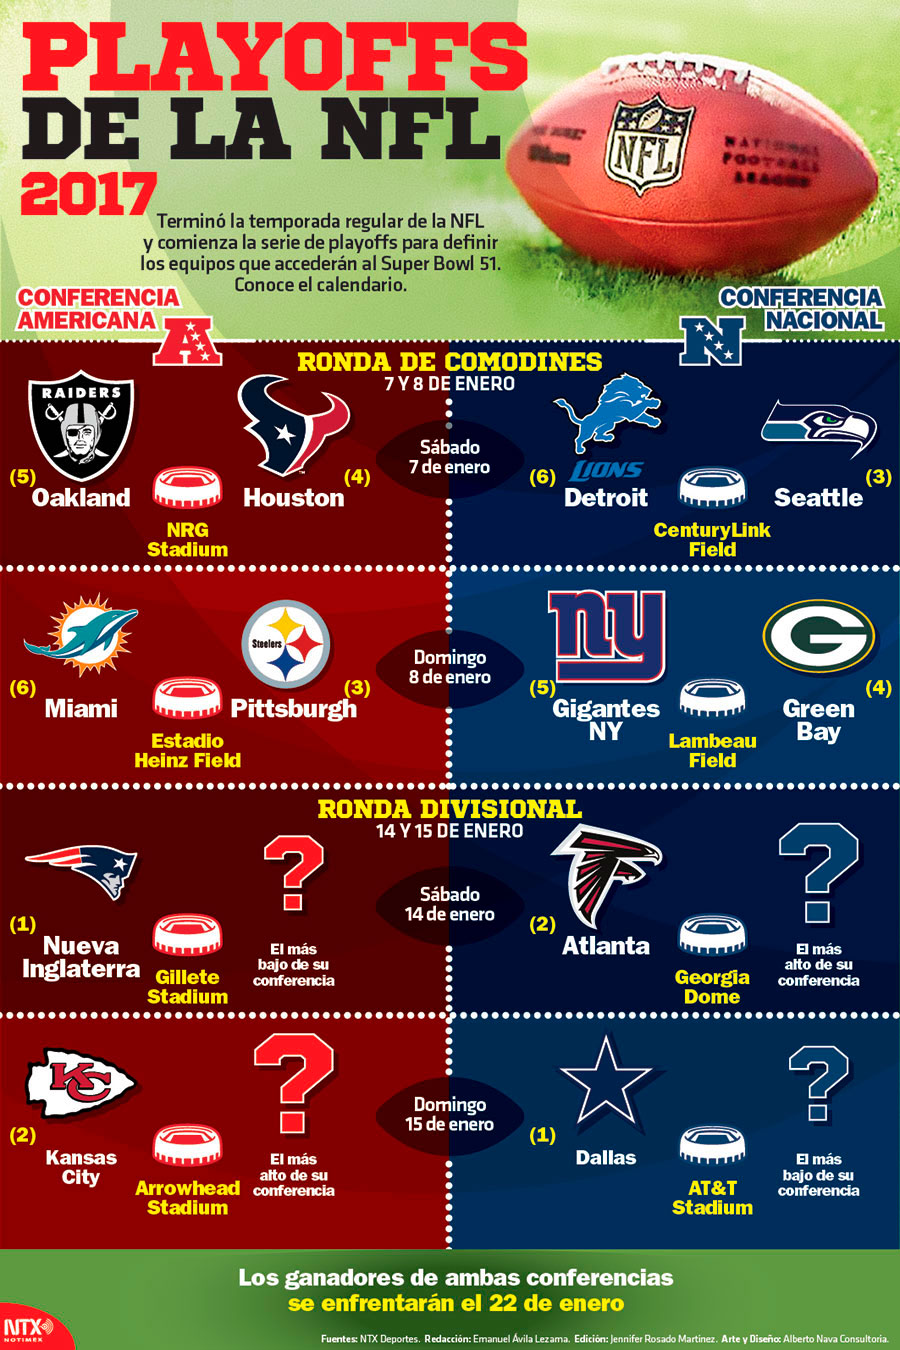 Playoffs de la NFL 2017